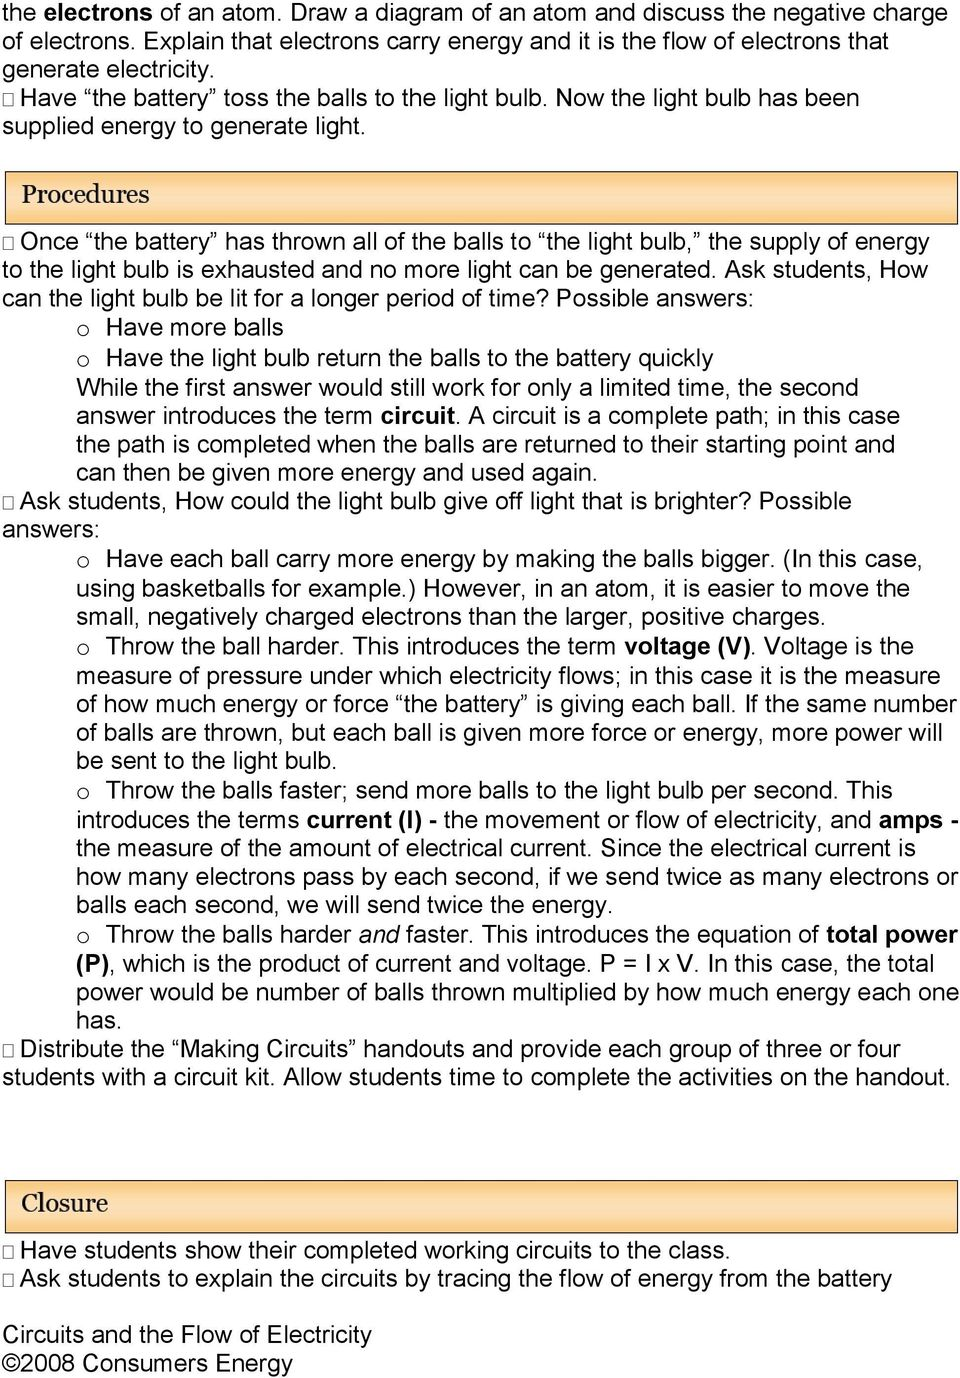 Circuits and the Flow of Electricity - PDF